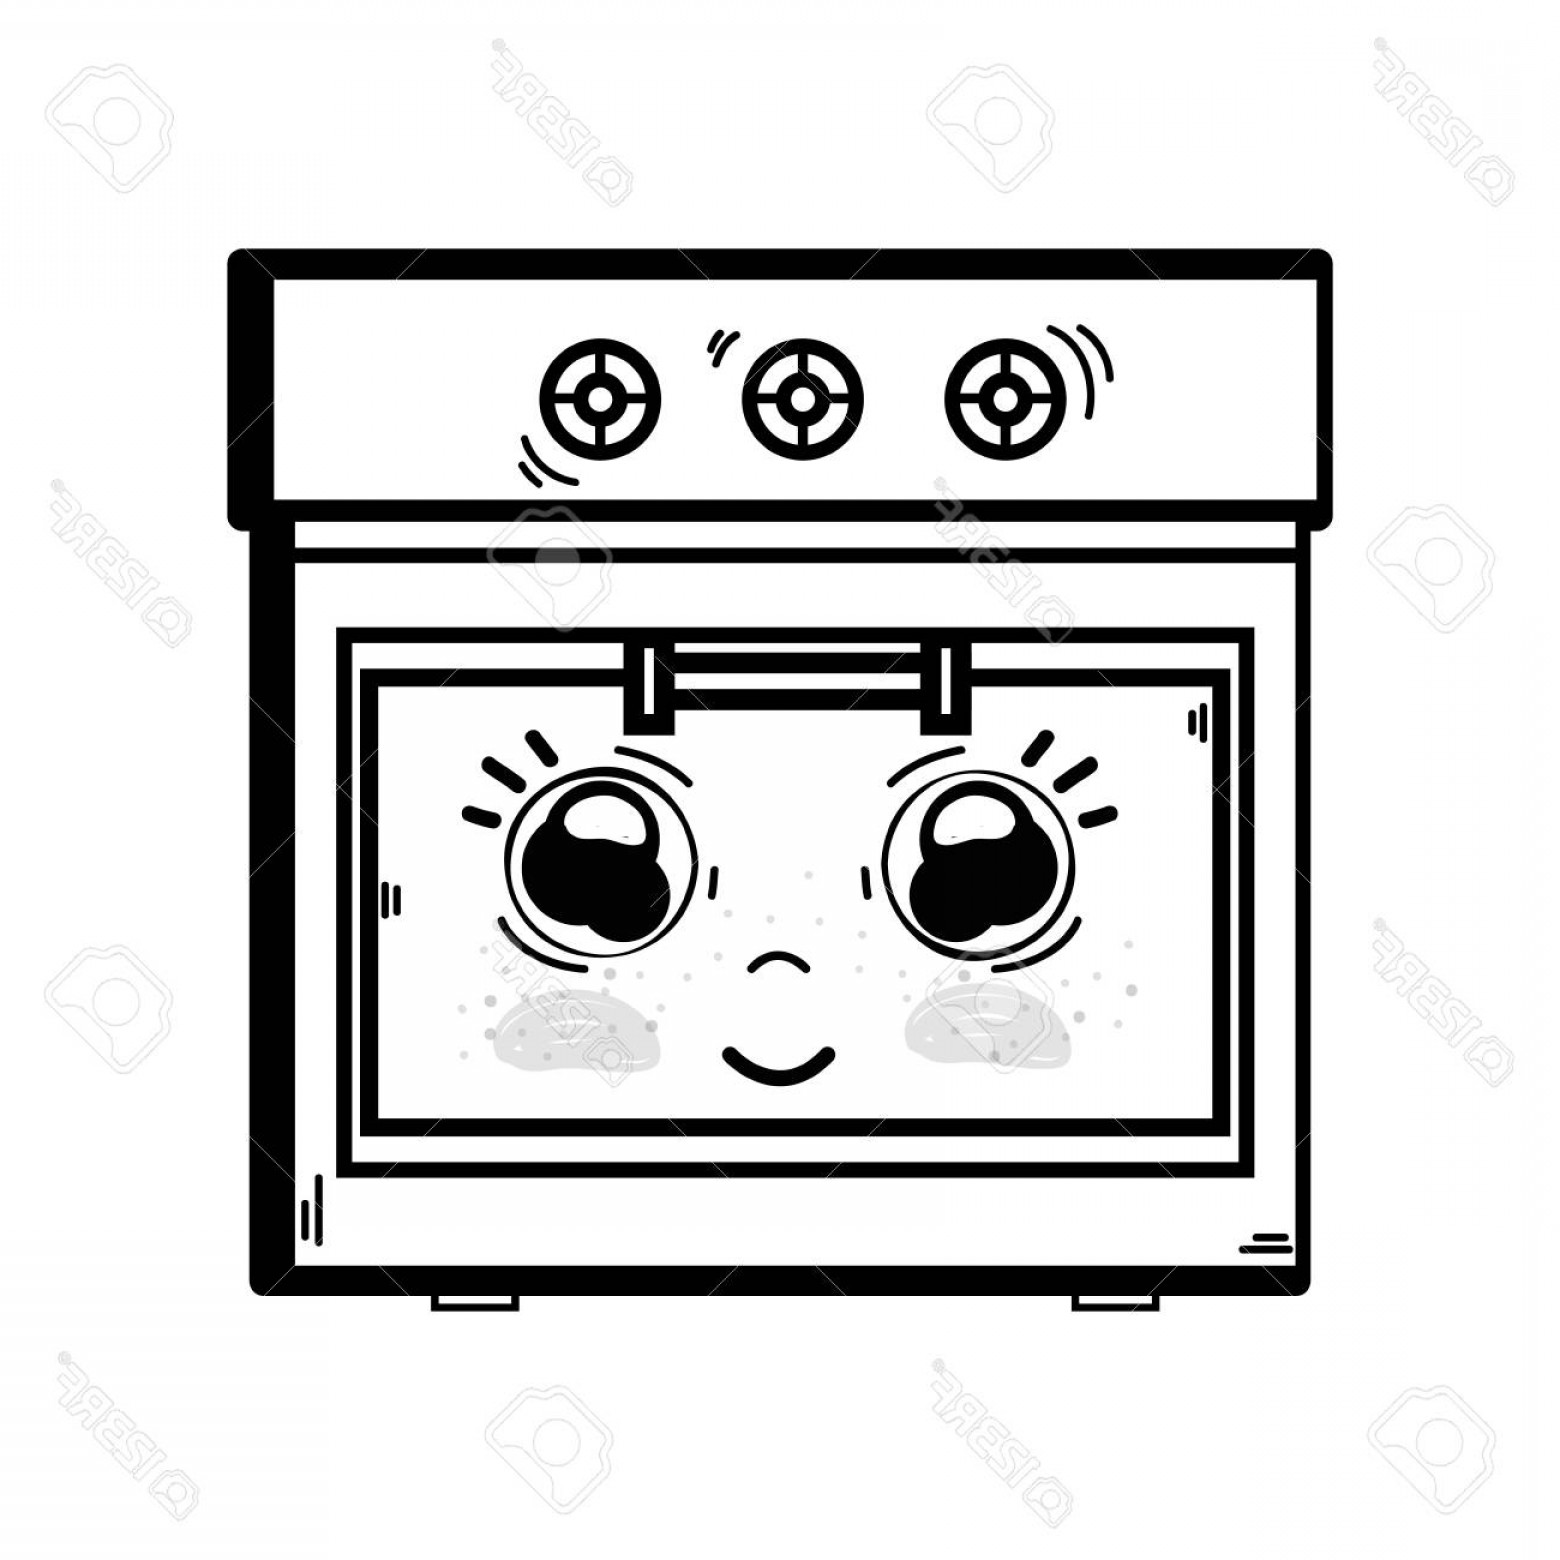 Happy Oven Vector: Photostock Vector Line Cute Happy Oven Technology Vector Illustration